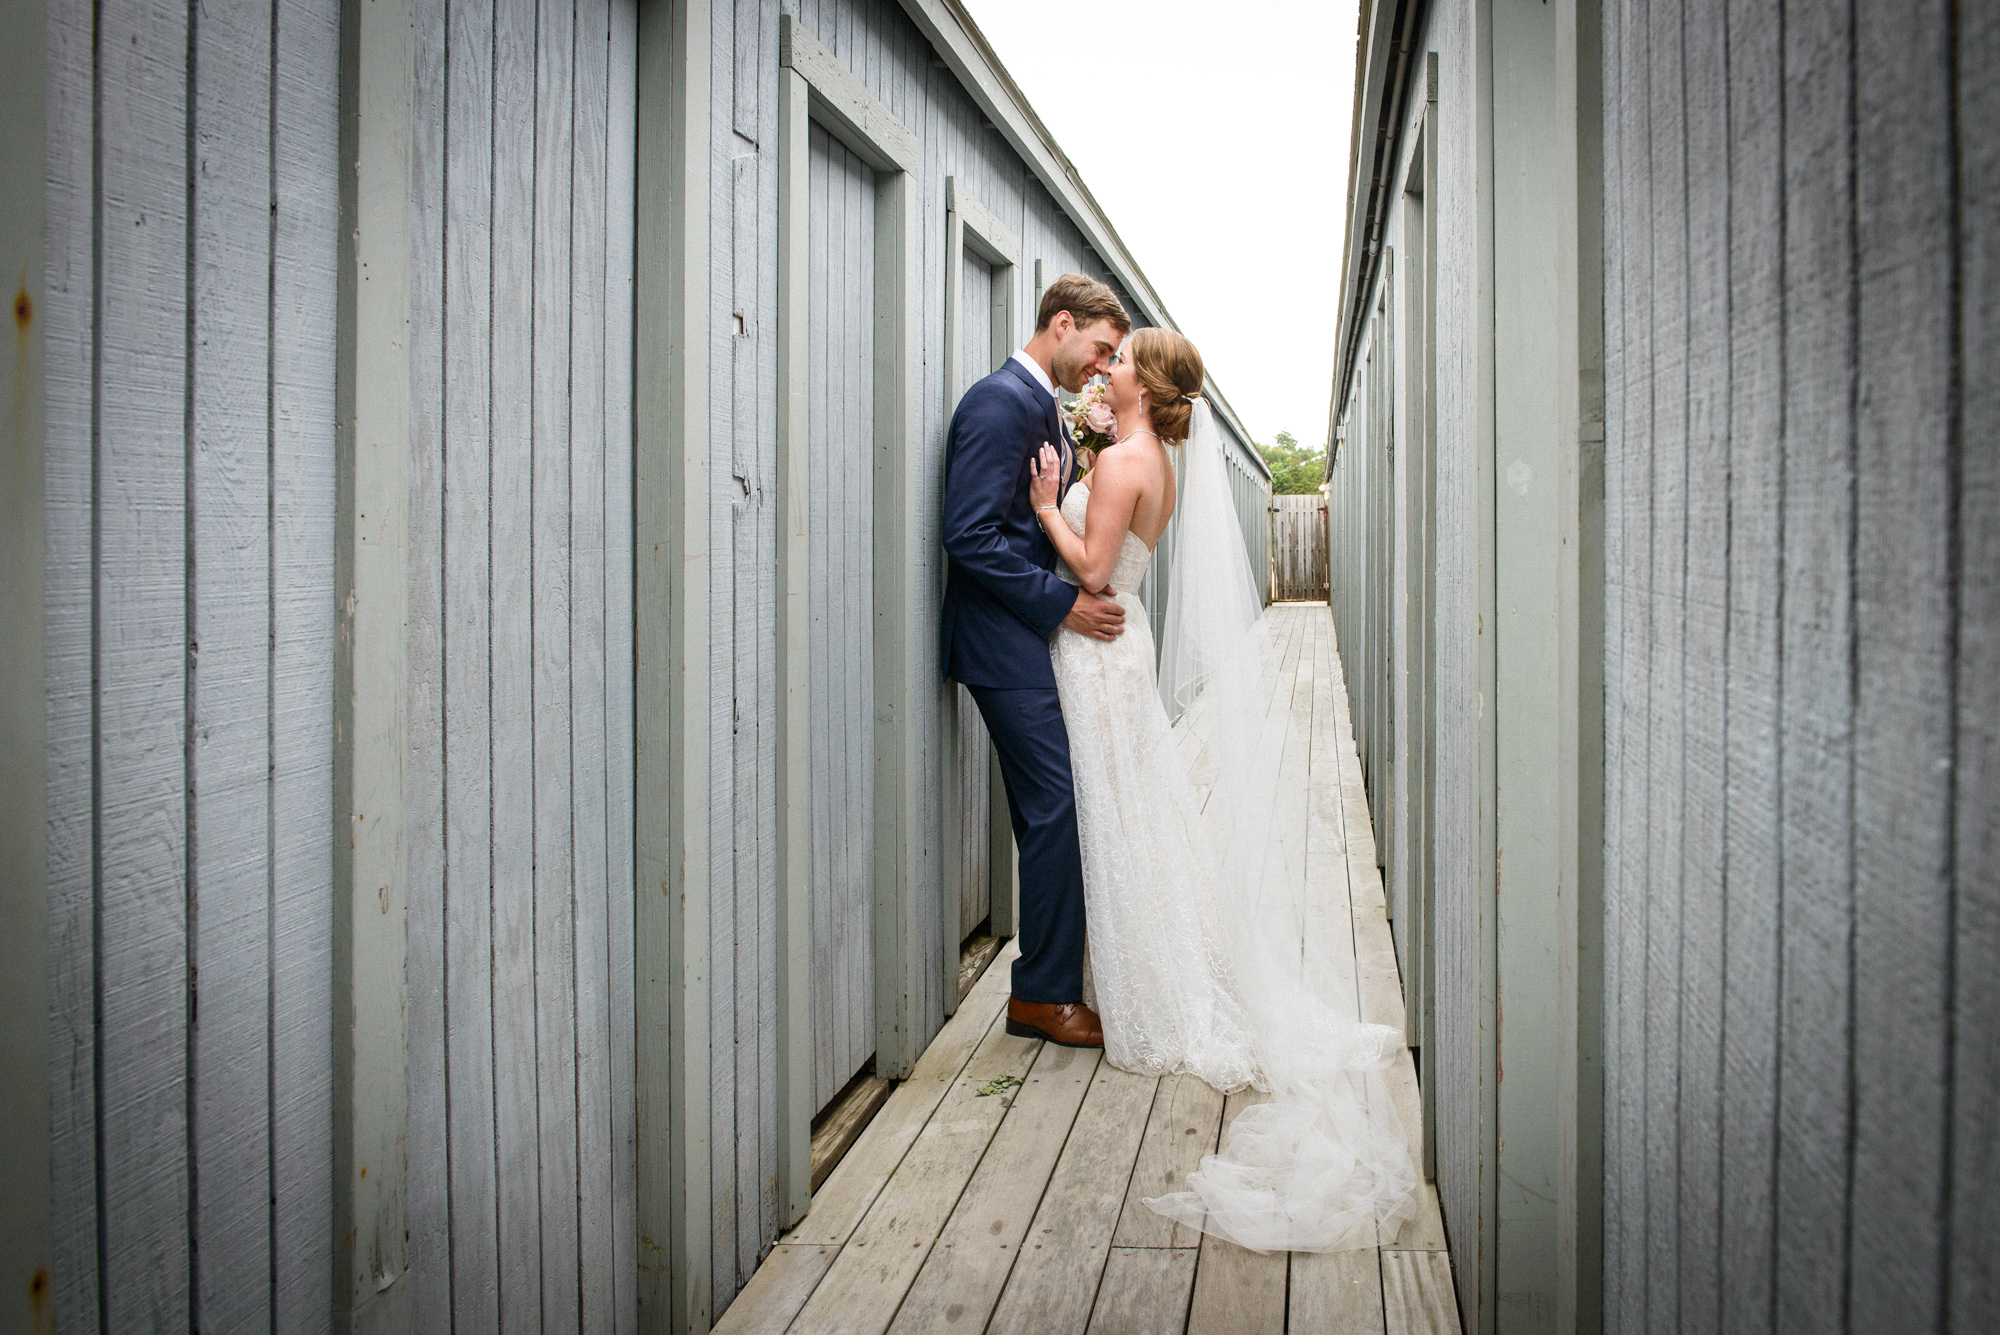 A bride and groom share a moment at the East Chop Beach Club  photo by David Welch Photography